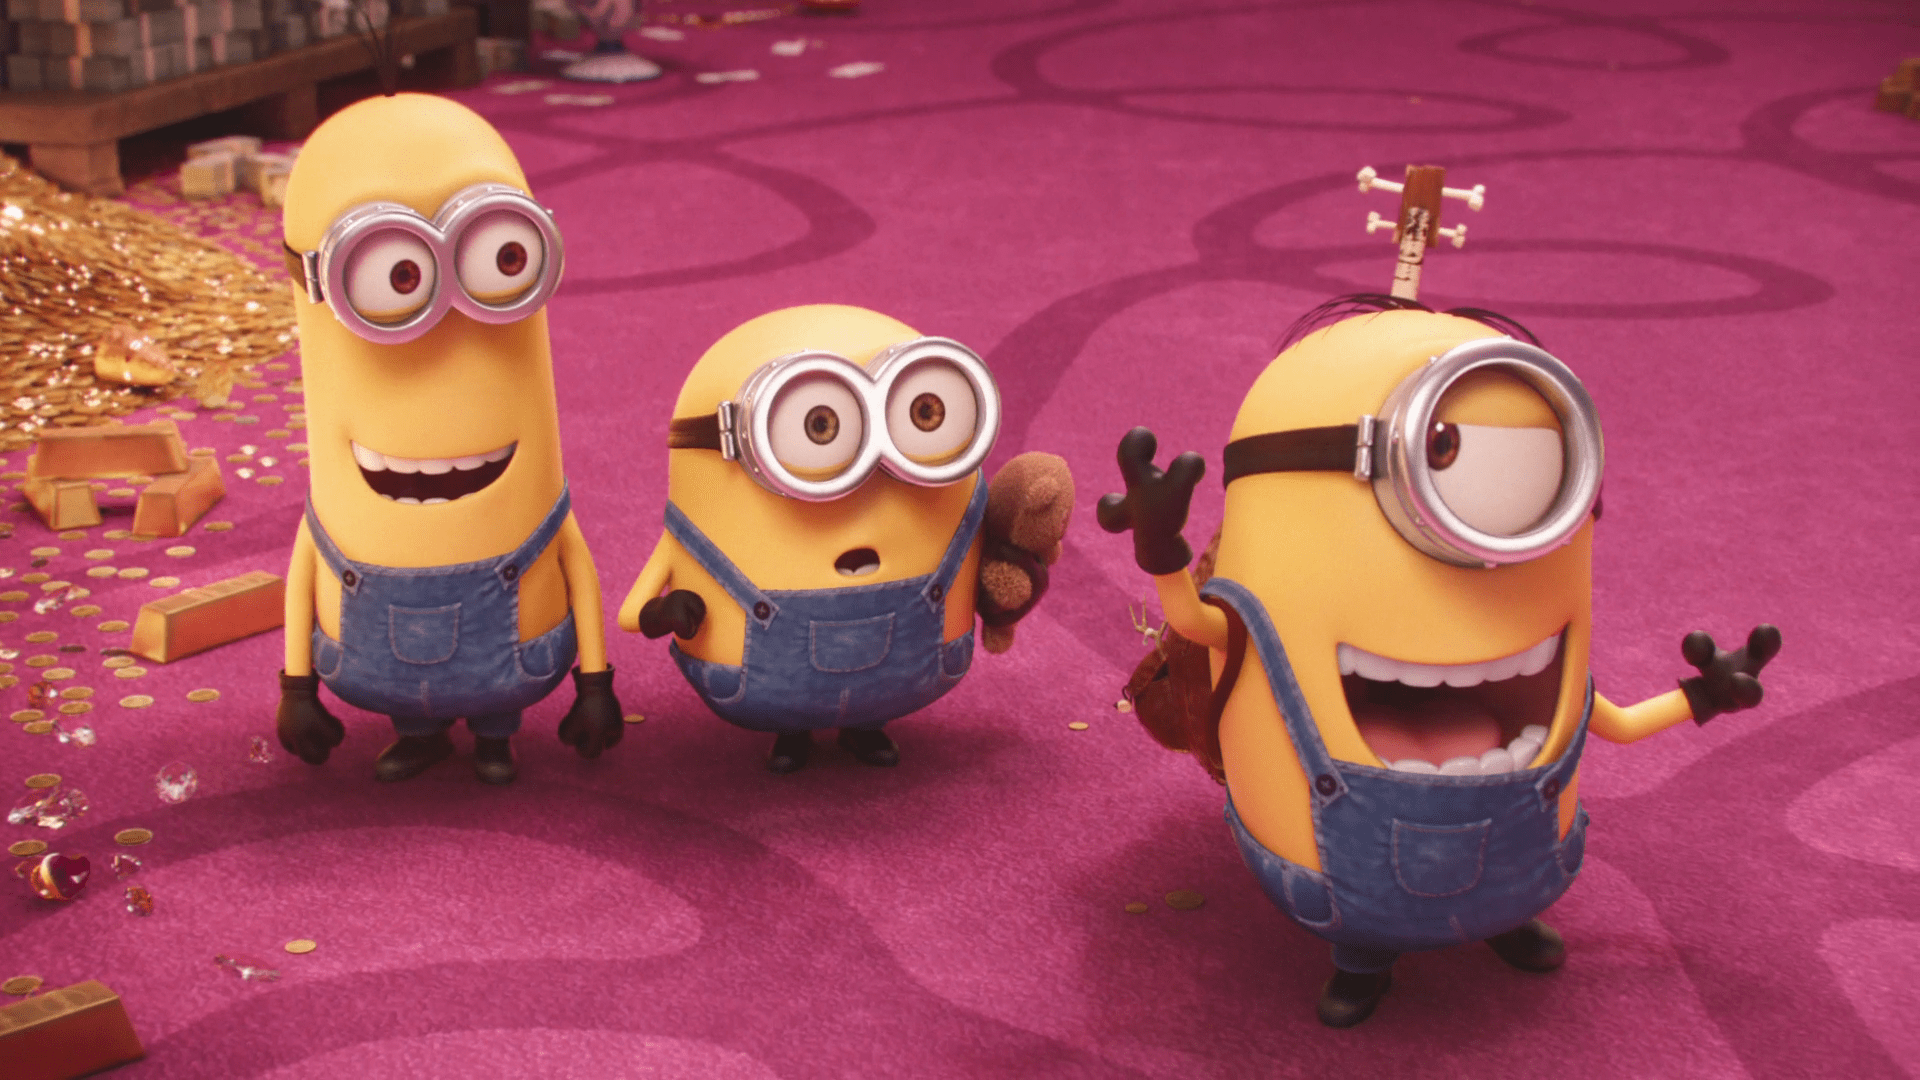 Cute Wallpapers For Facebook Cover Photo Los Minions Wallpapers Fondos De Pantalla De Los Minions